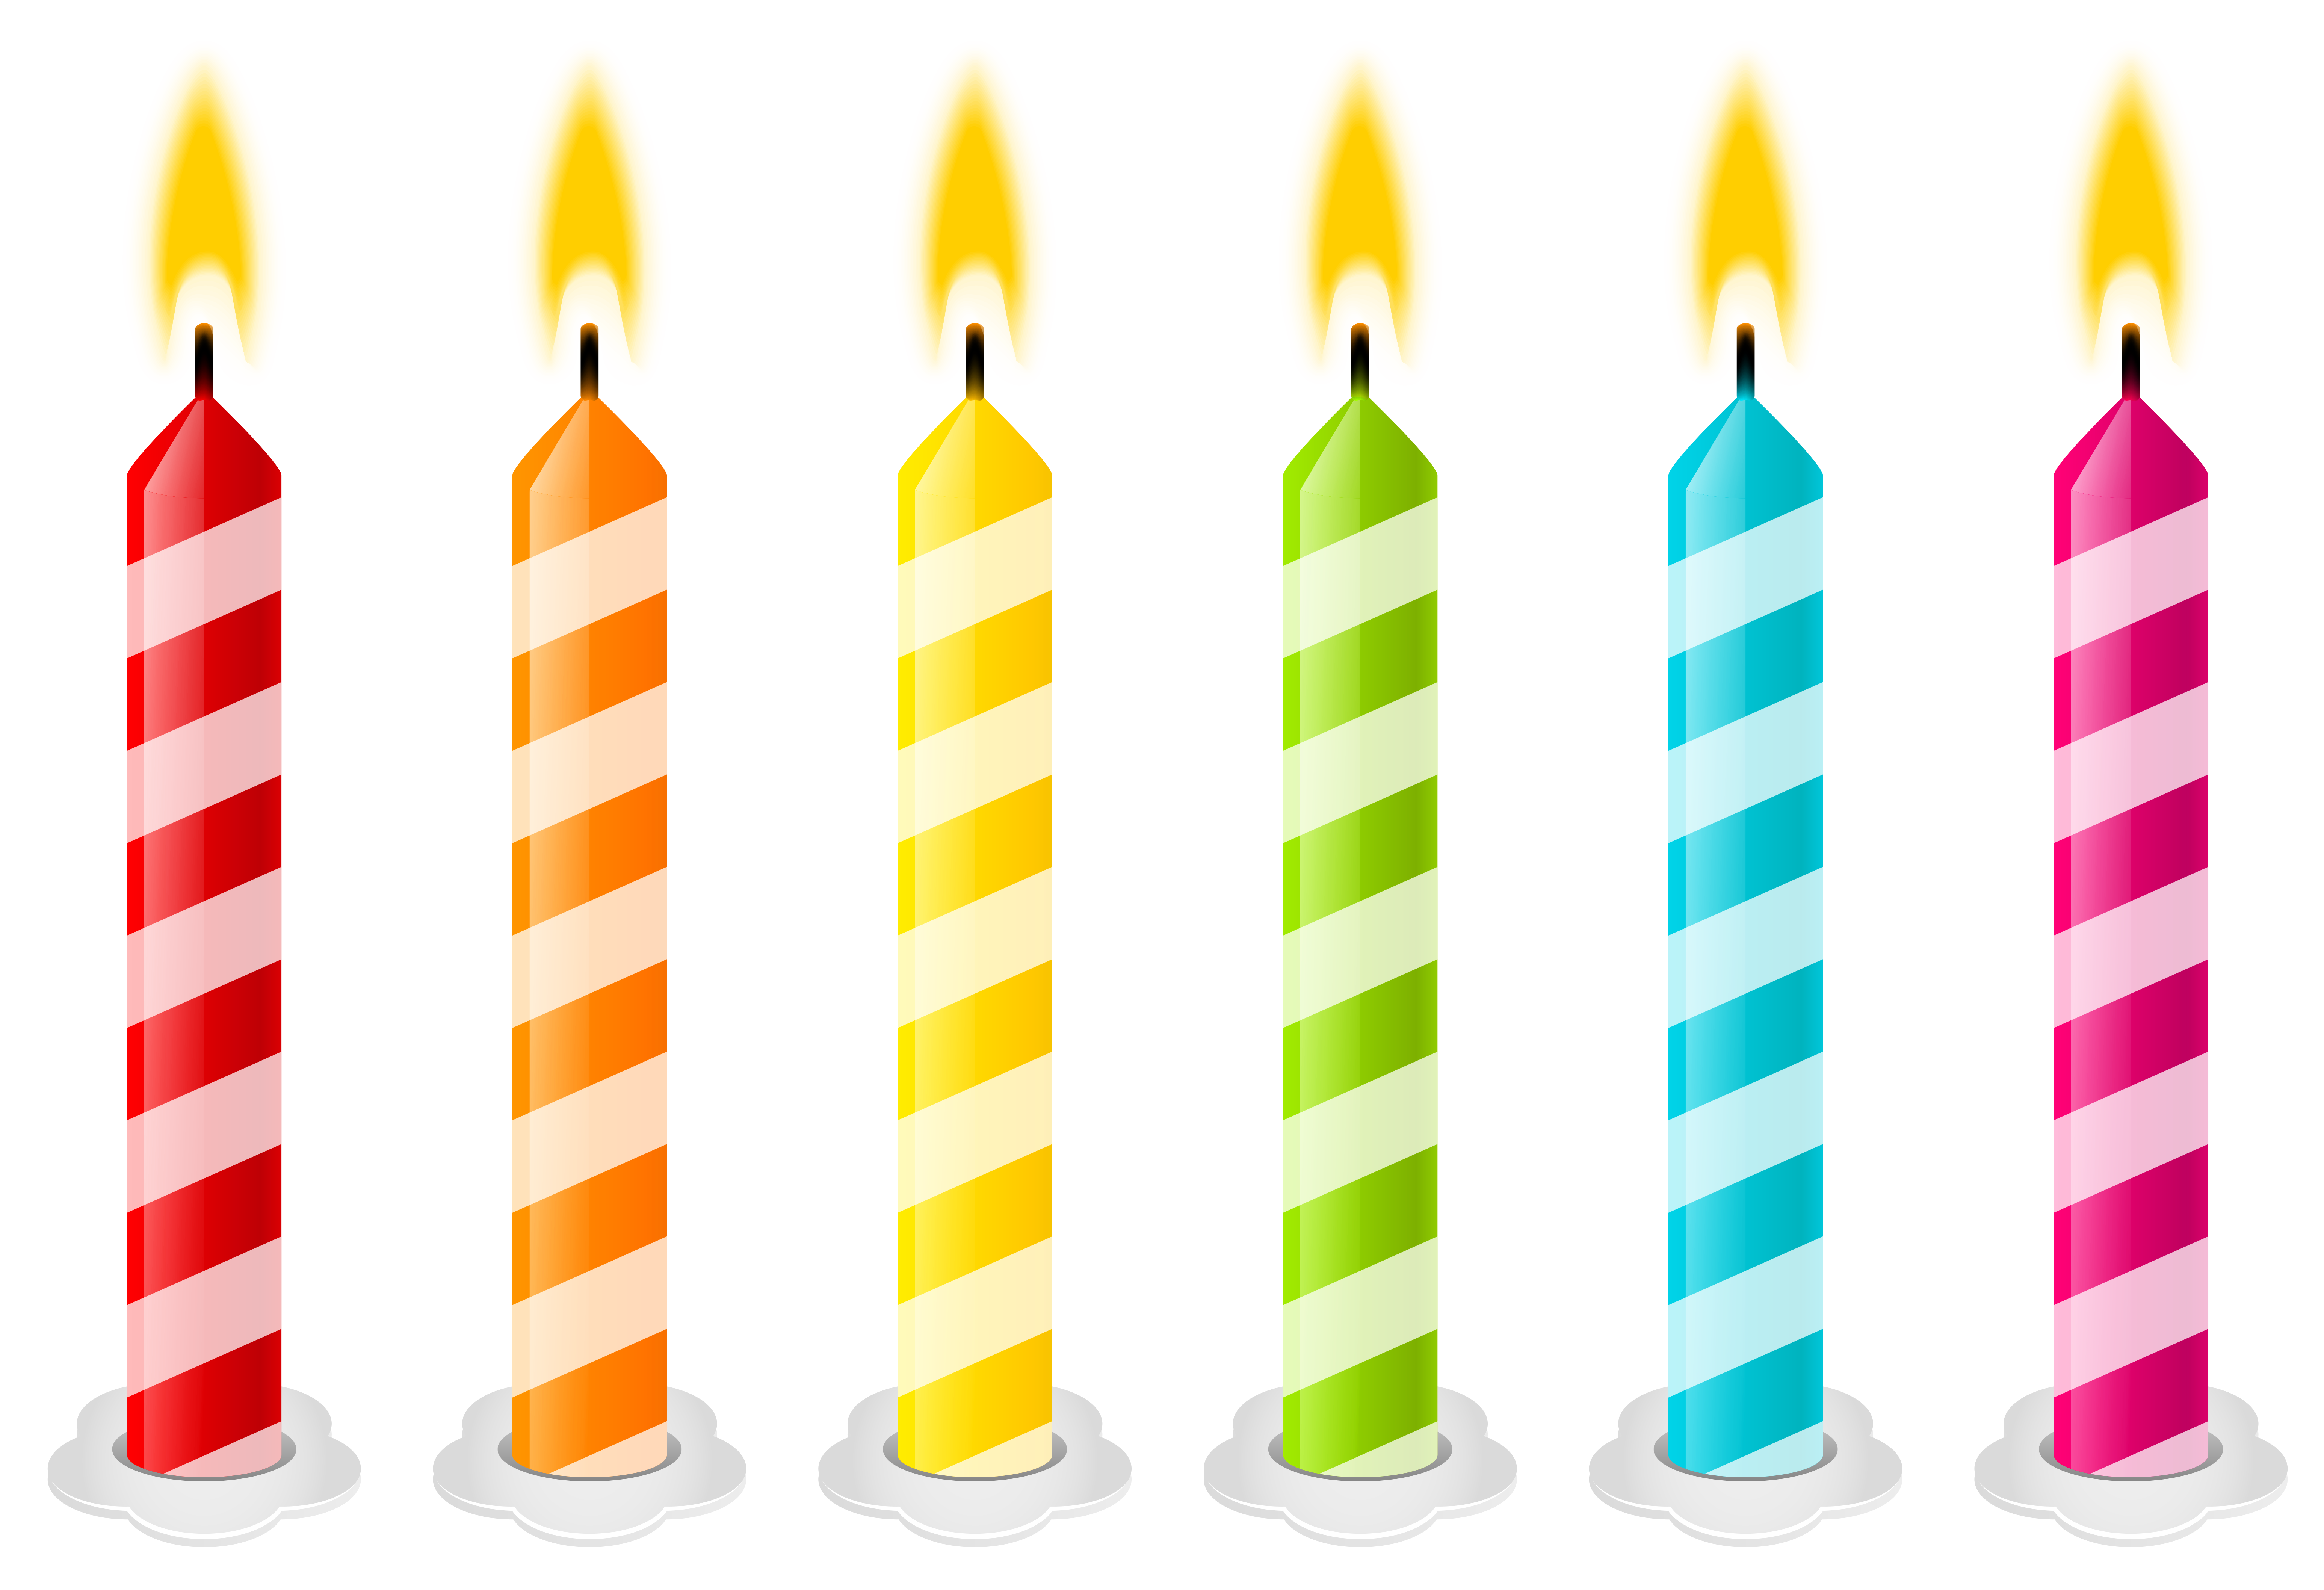 Birthday candle clipart animated. Clip art candles vector